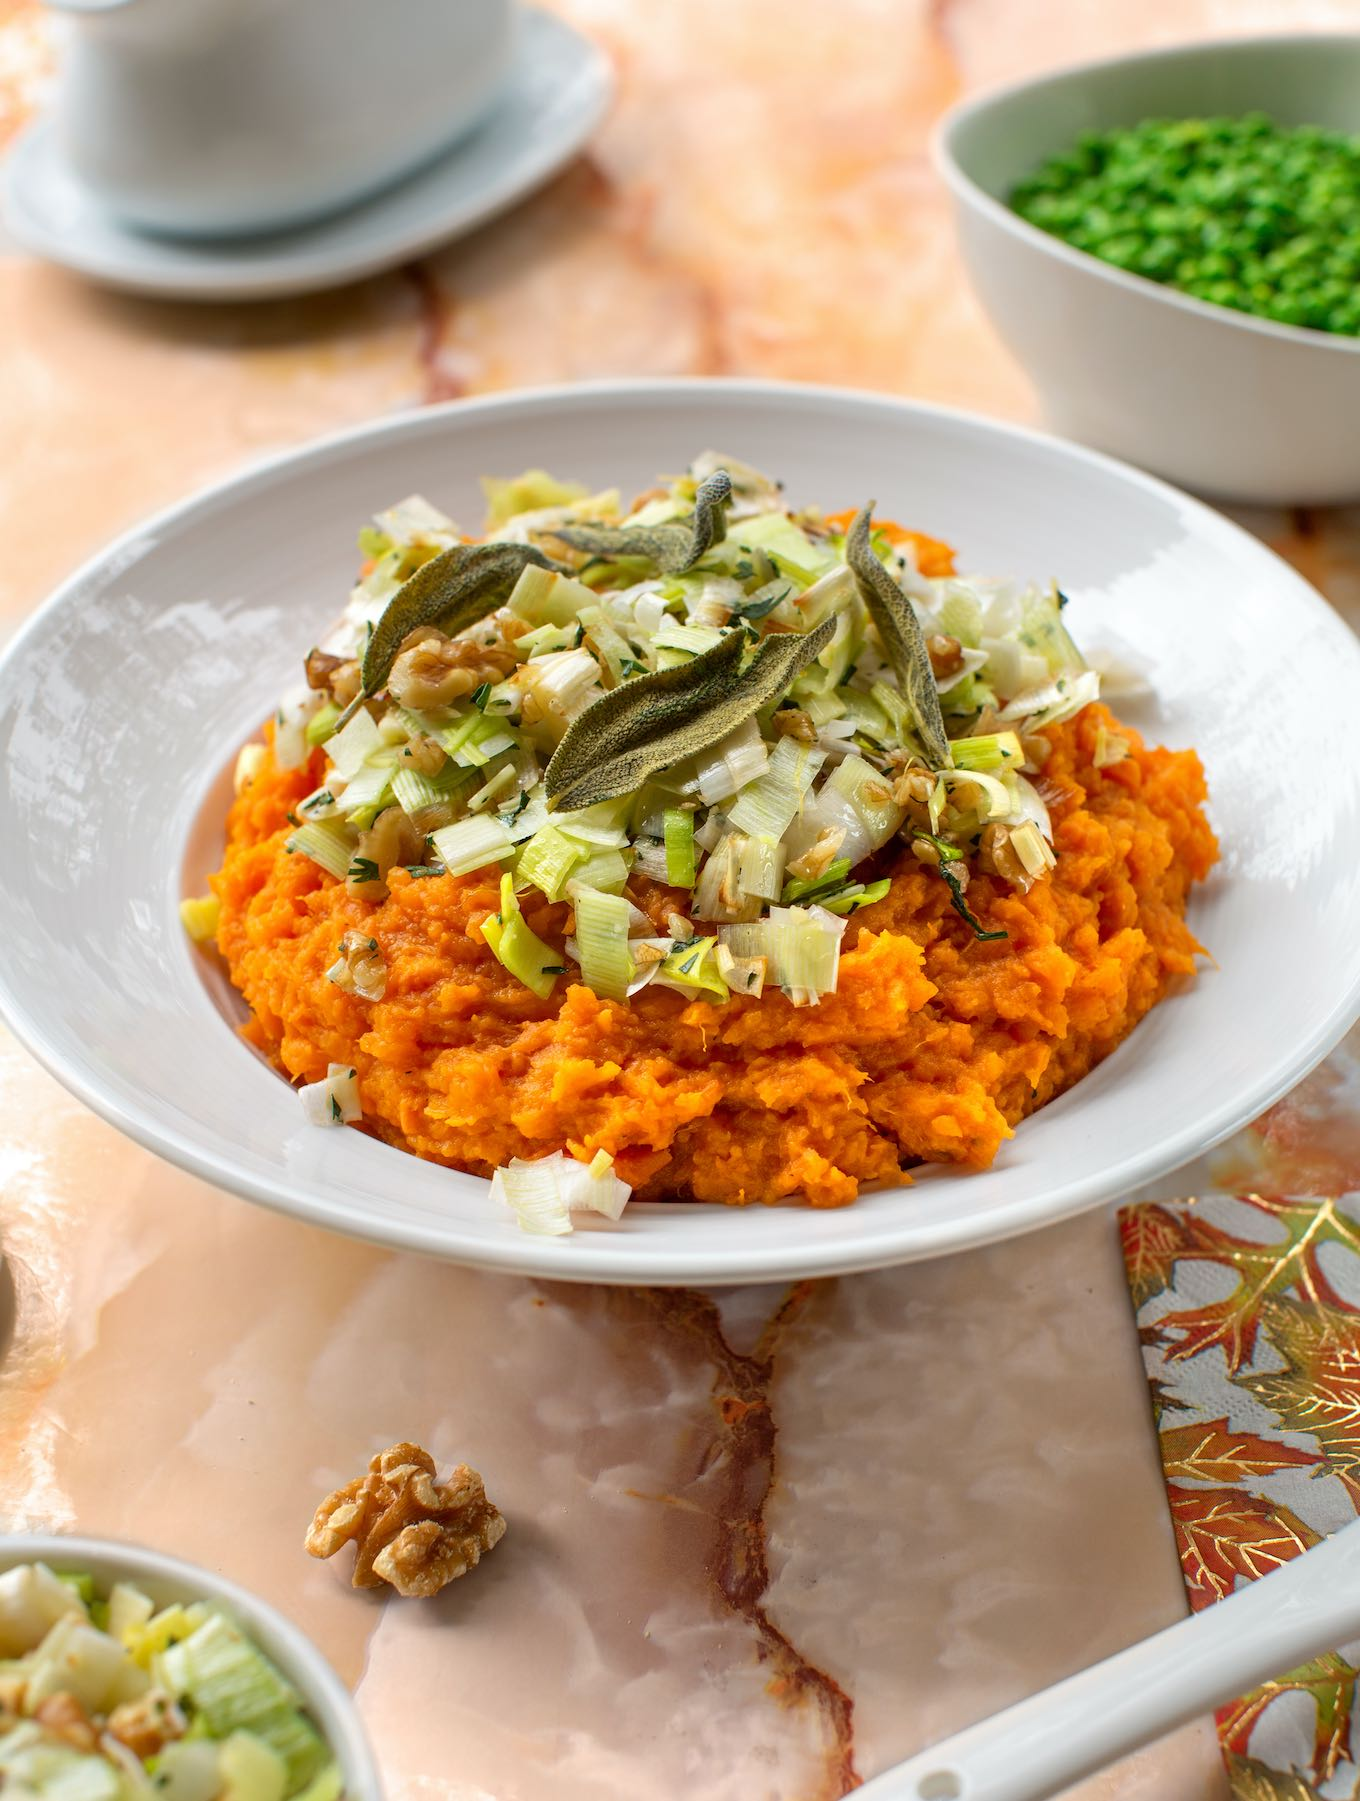 Mashed sweet potatoes with leeks & walnuts